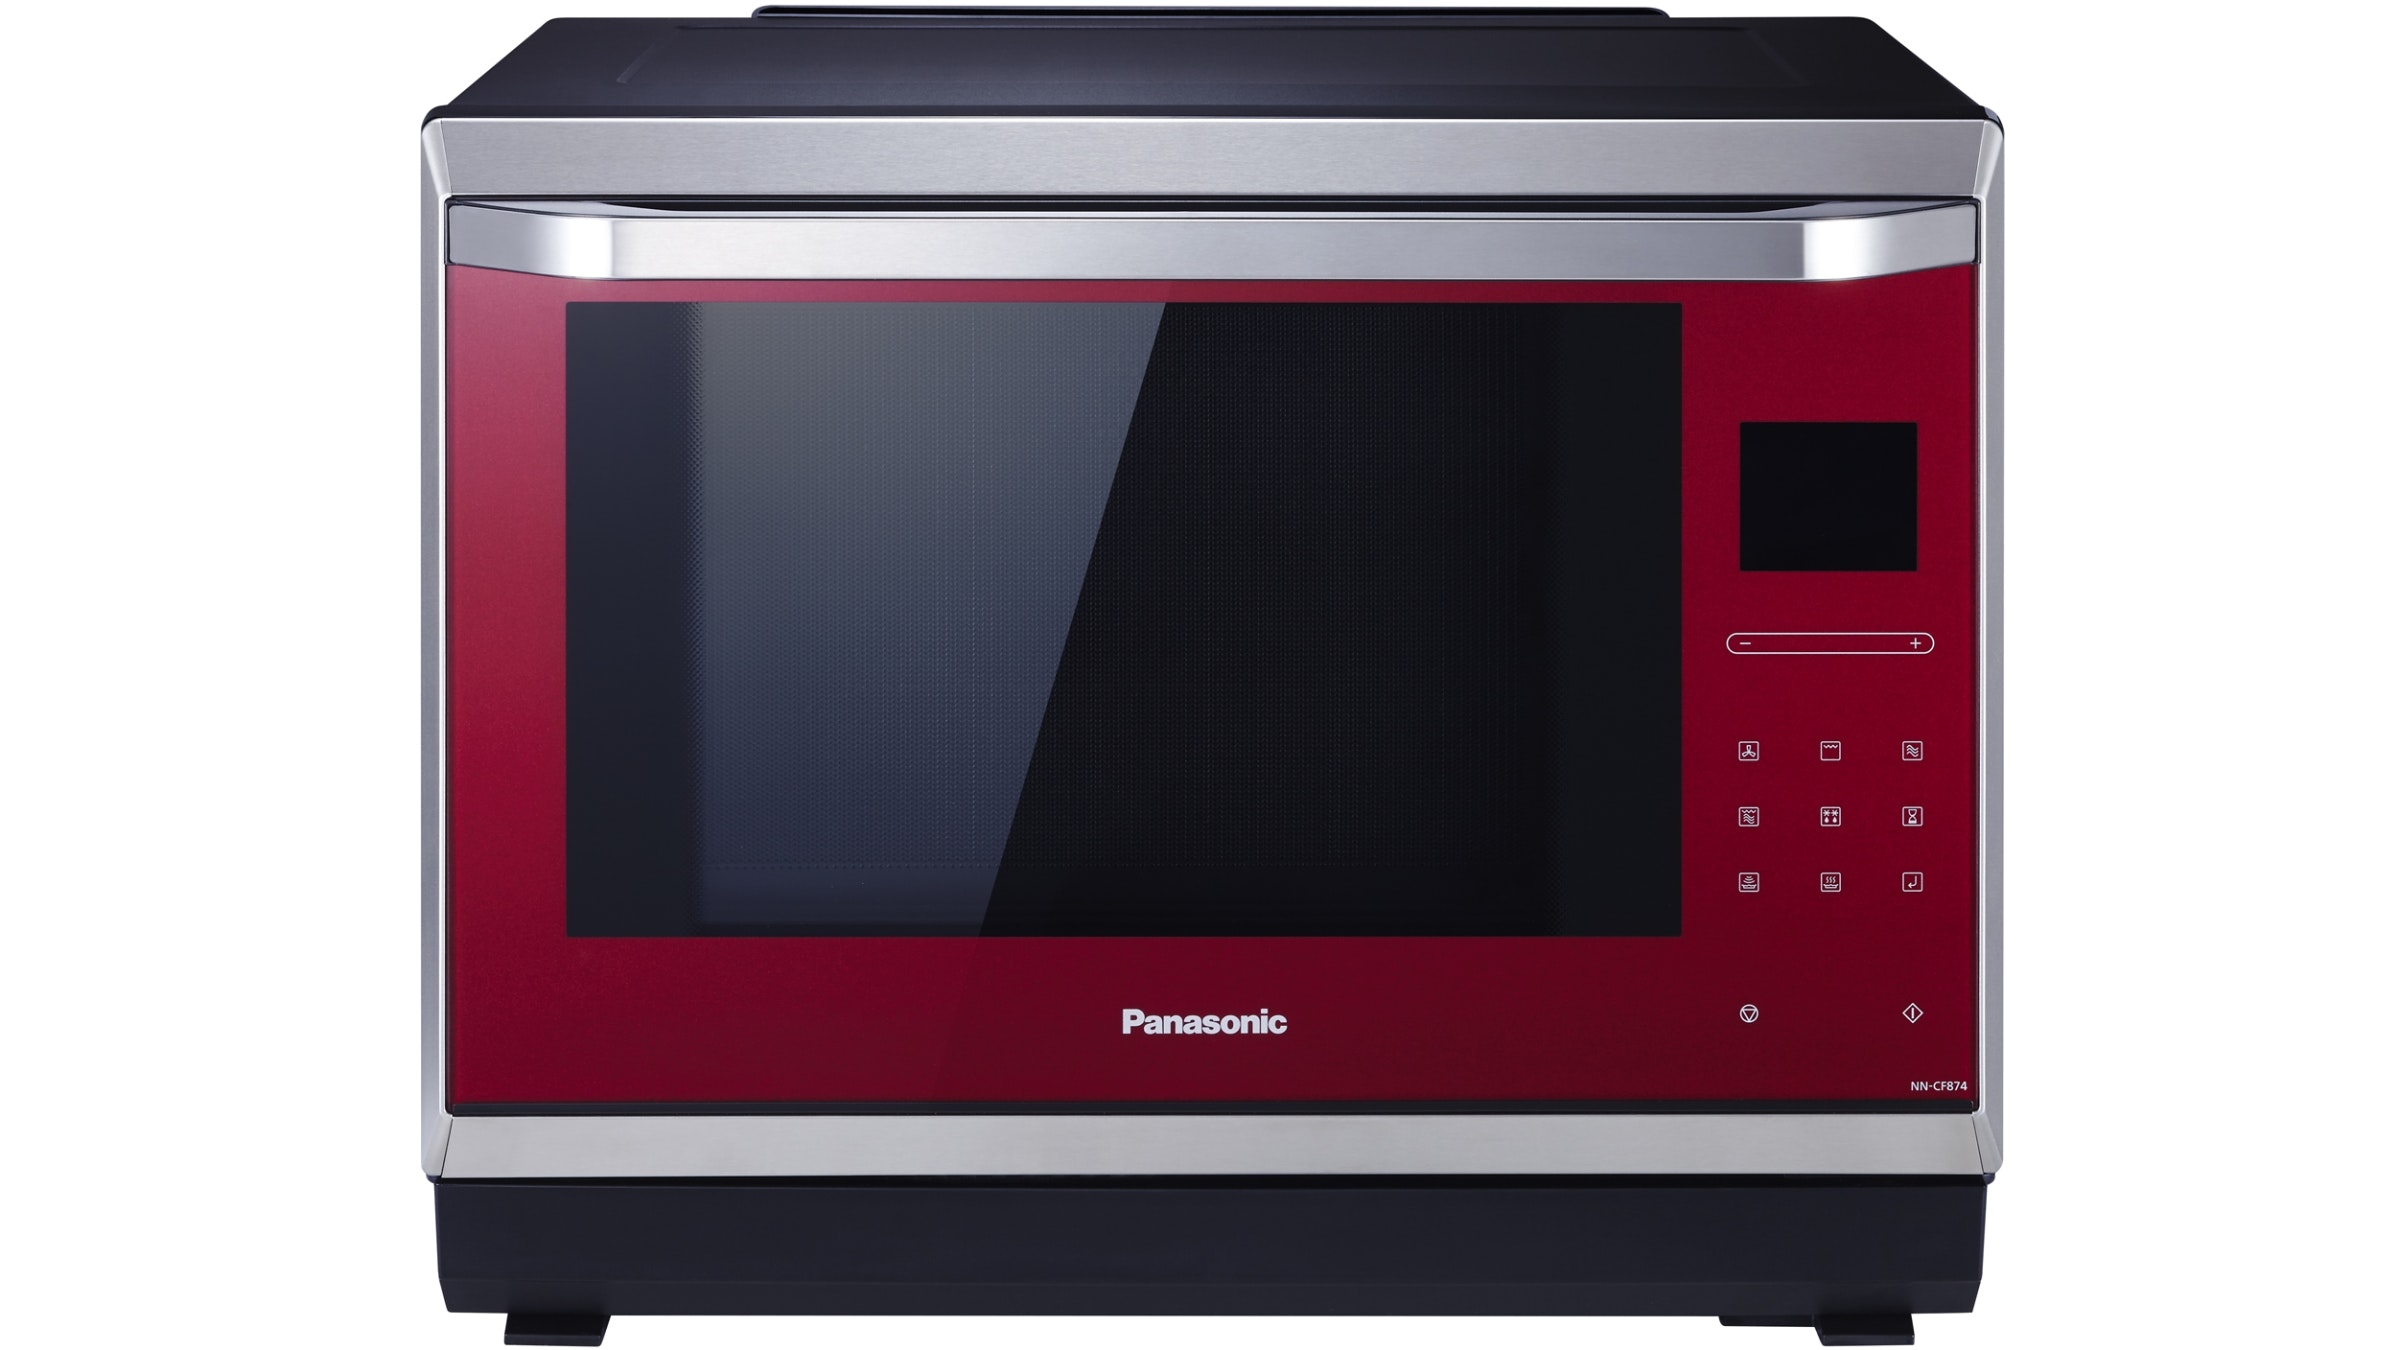 panasonic 32l inverter convection microwave oven red - Panasonic Microwave Inverter